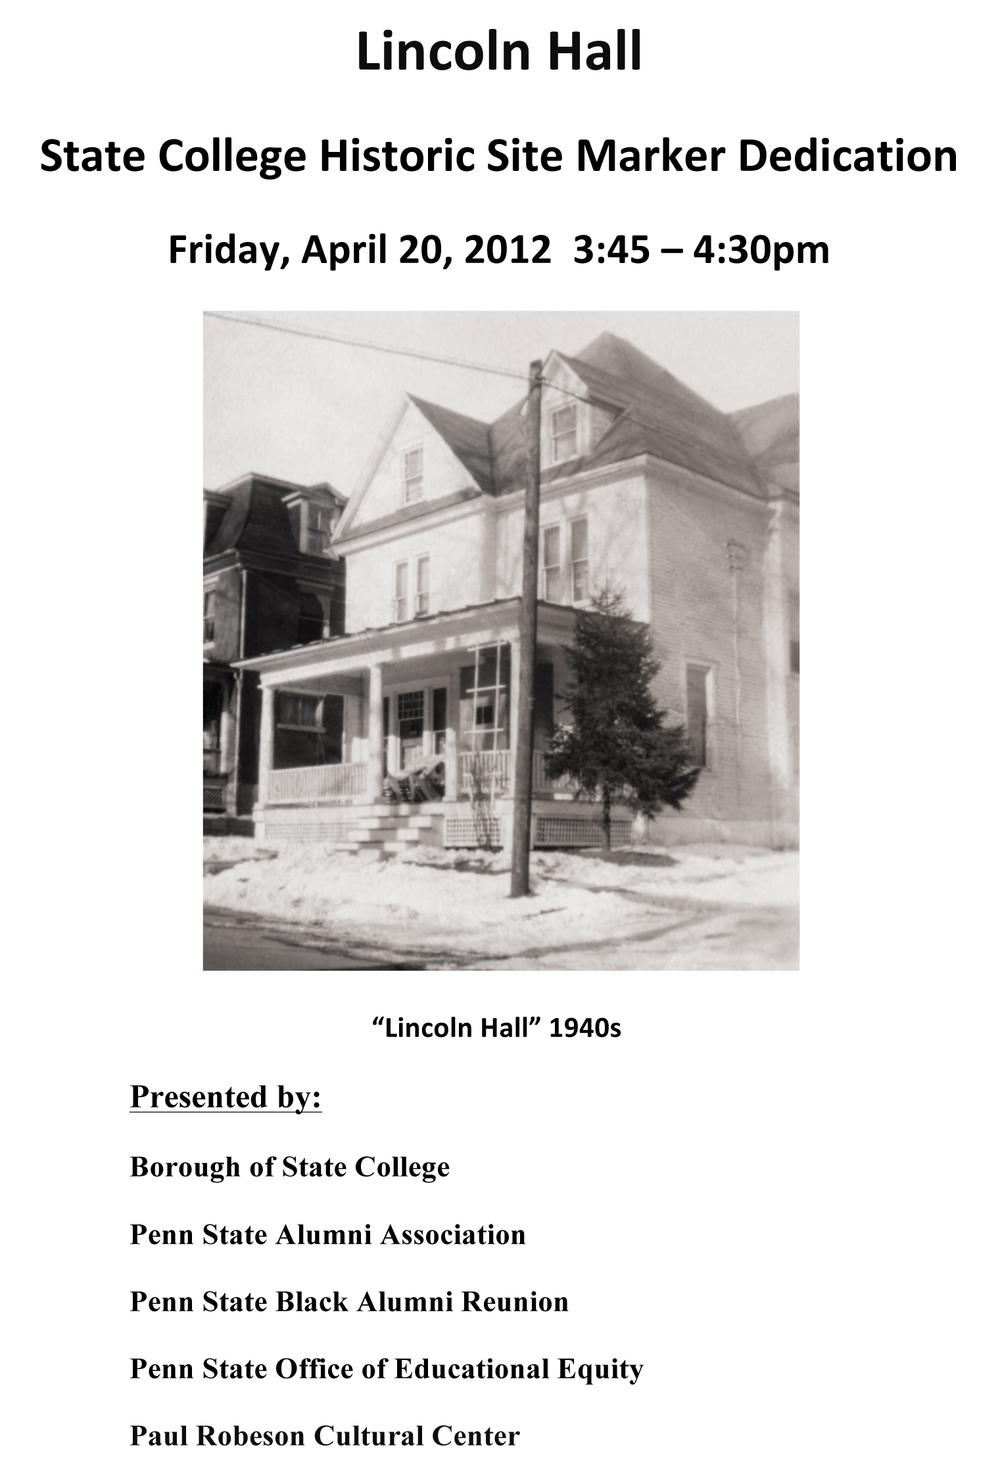 Lincoln Hall Dedication Program - Click to Download